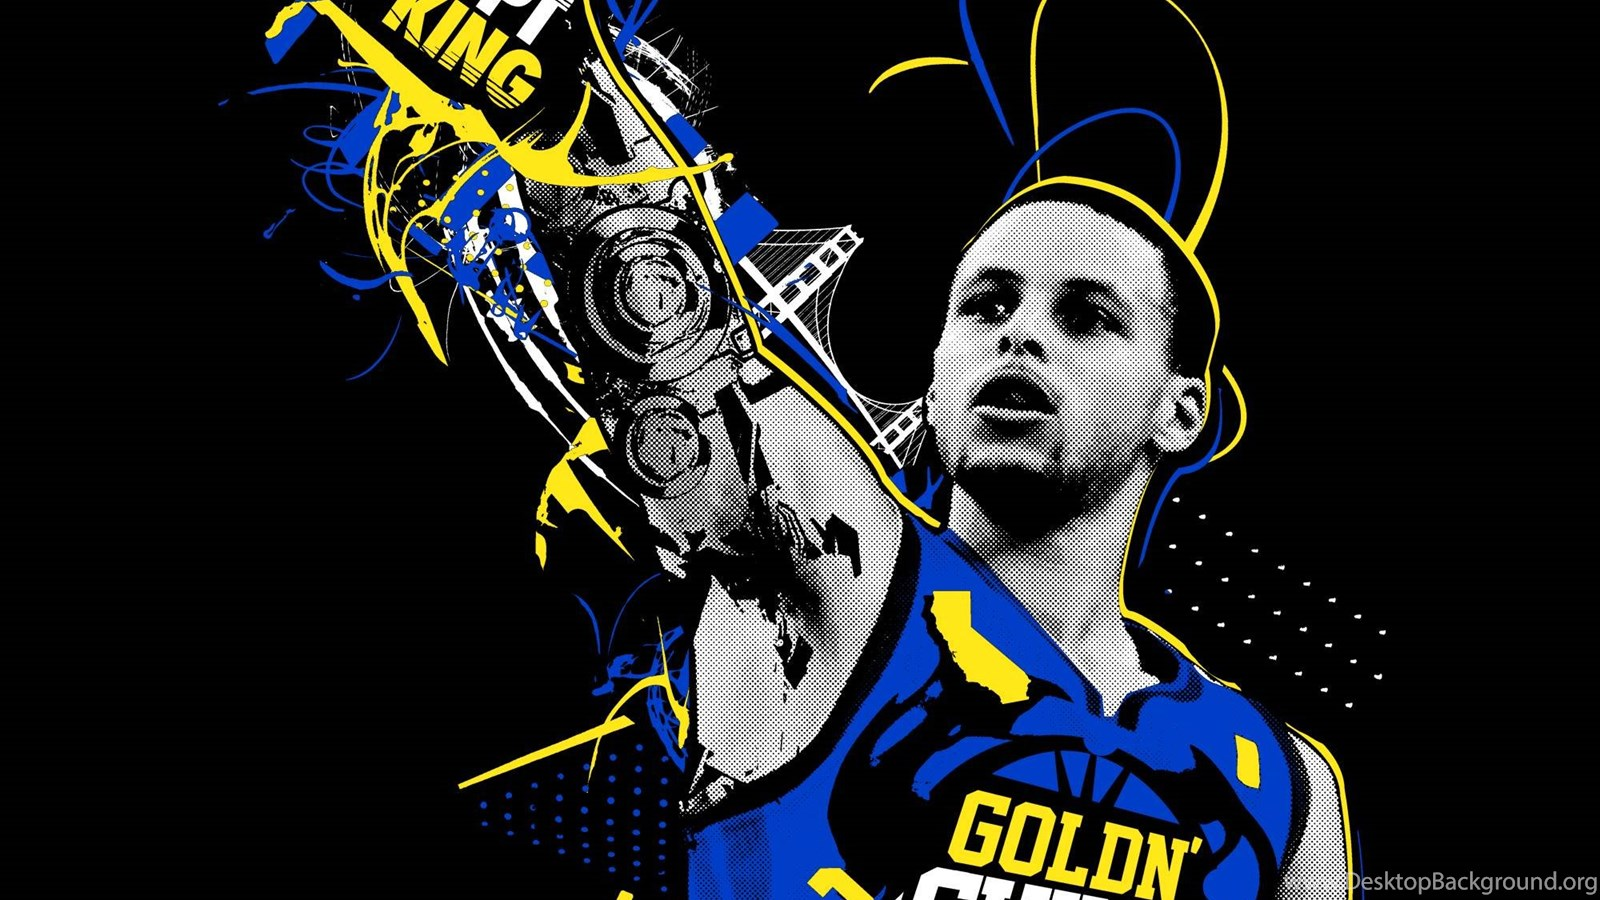 Sport Wallpaper Stephen Curry: Sports Stephen Curry HD NBA Wallpapers Desktop Background